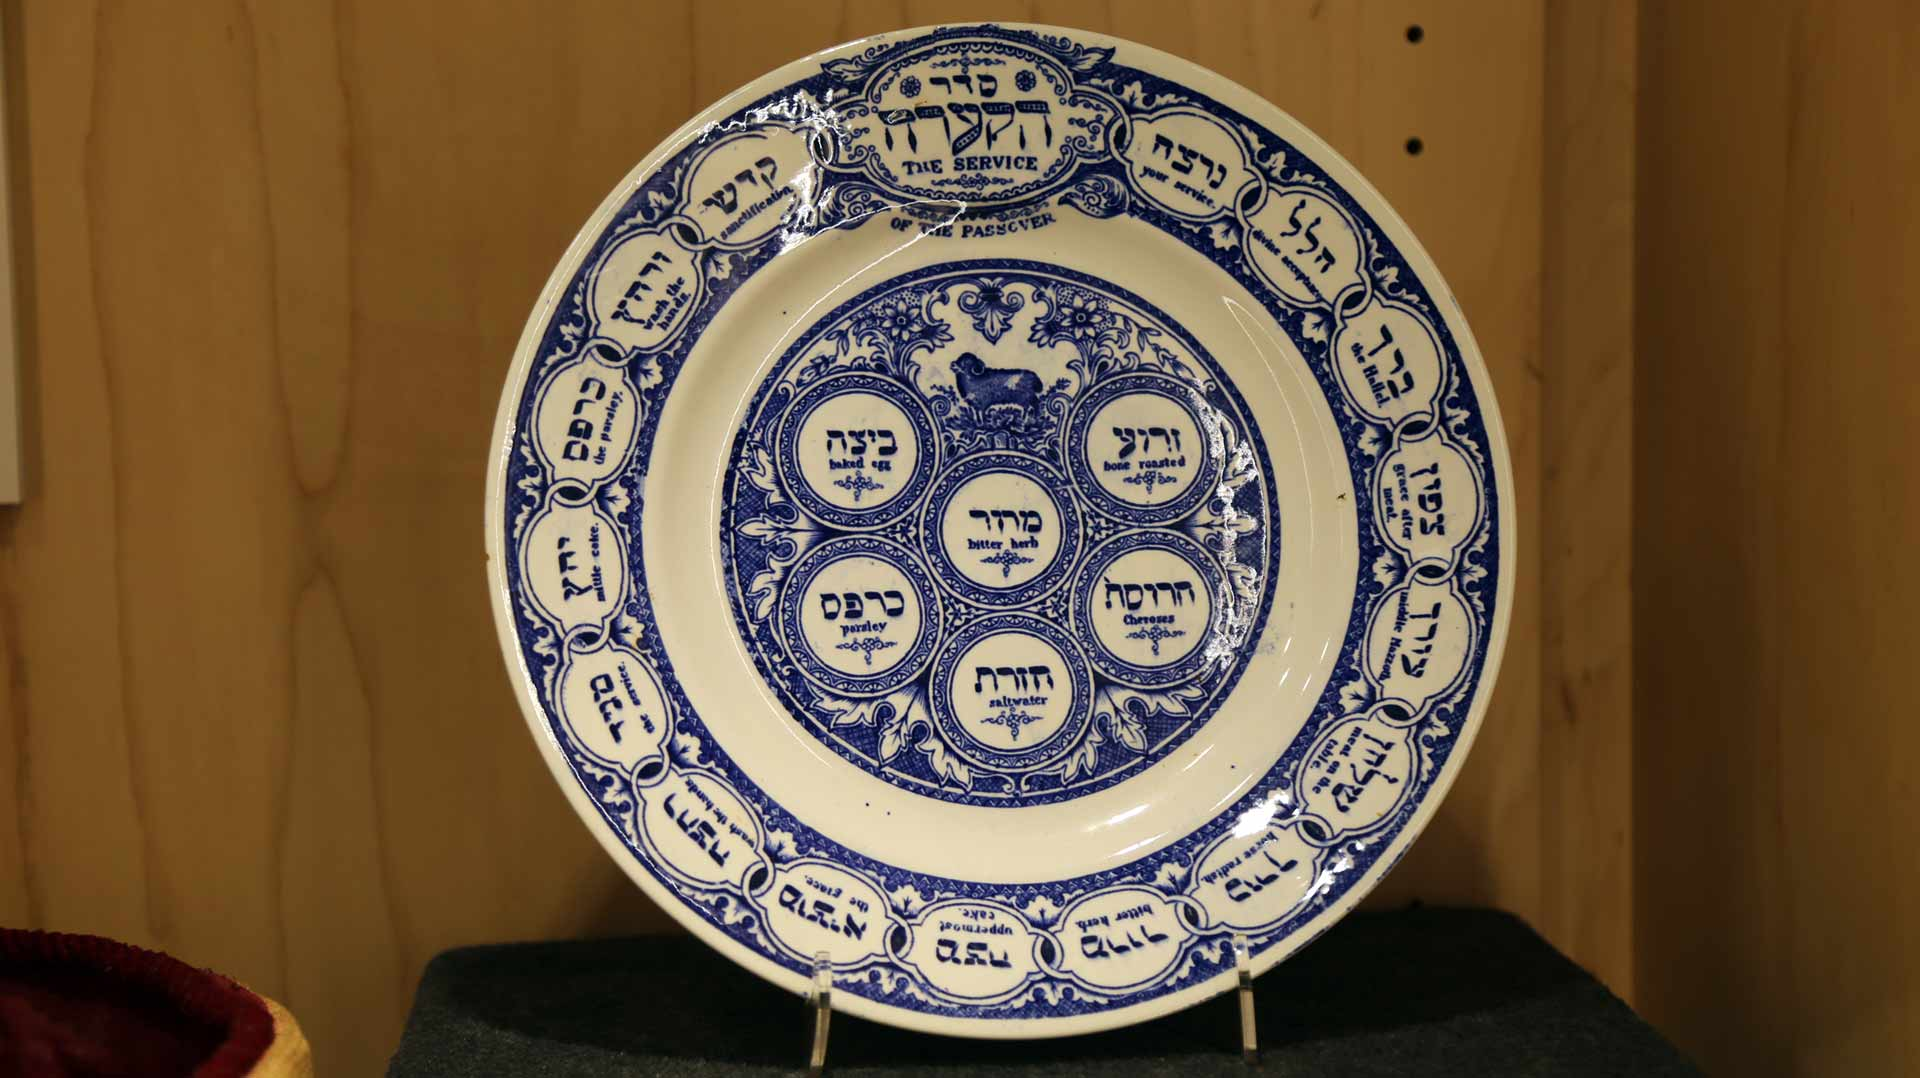 a round plate with navyblue prints